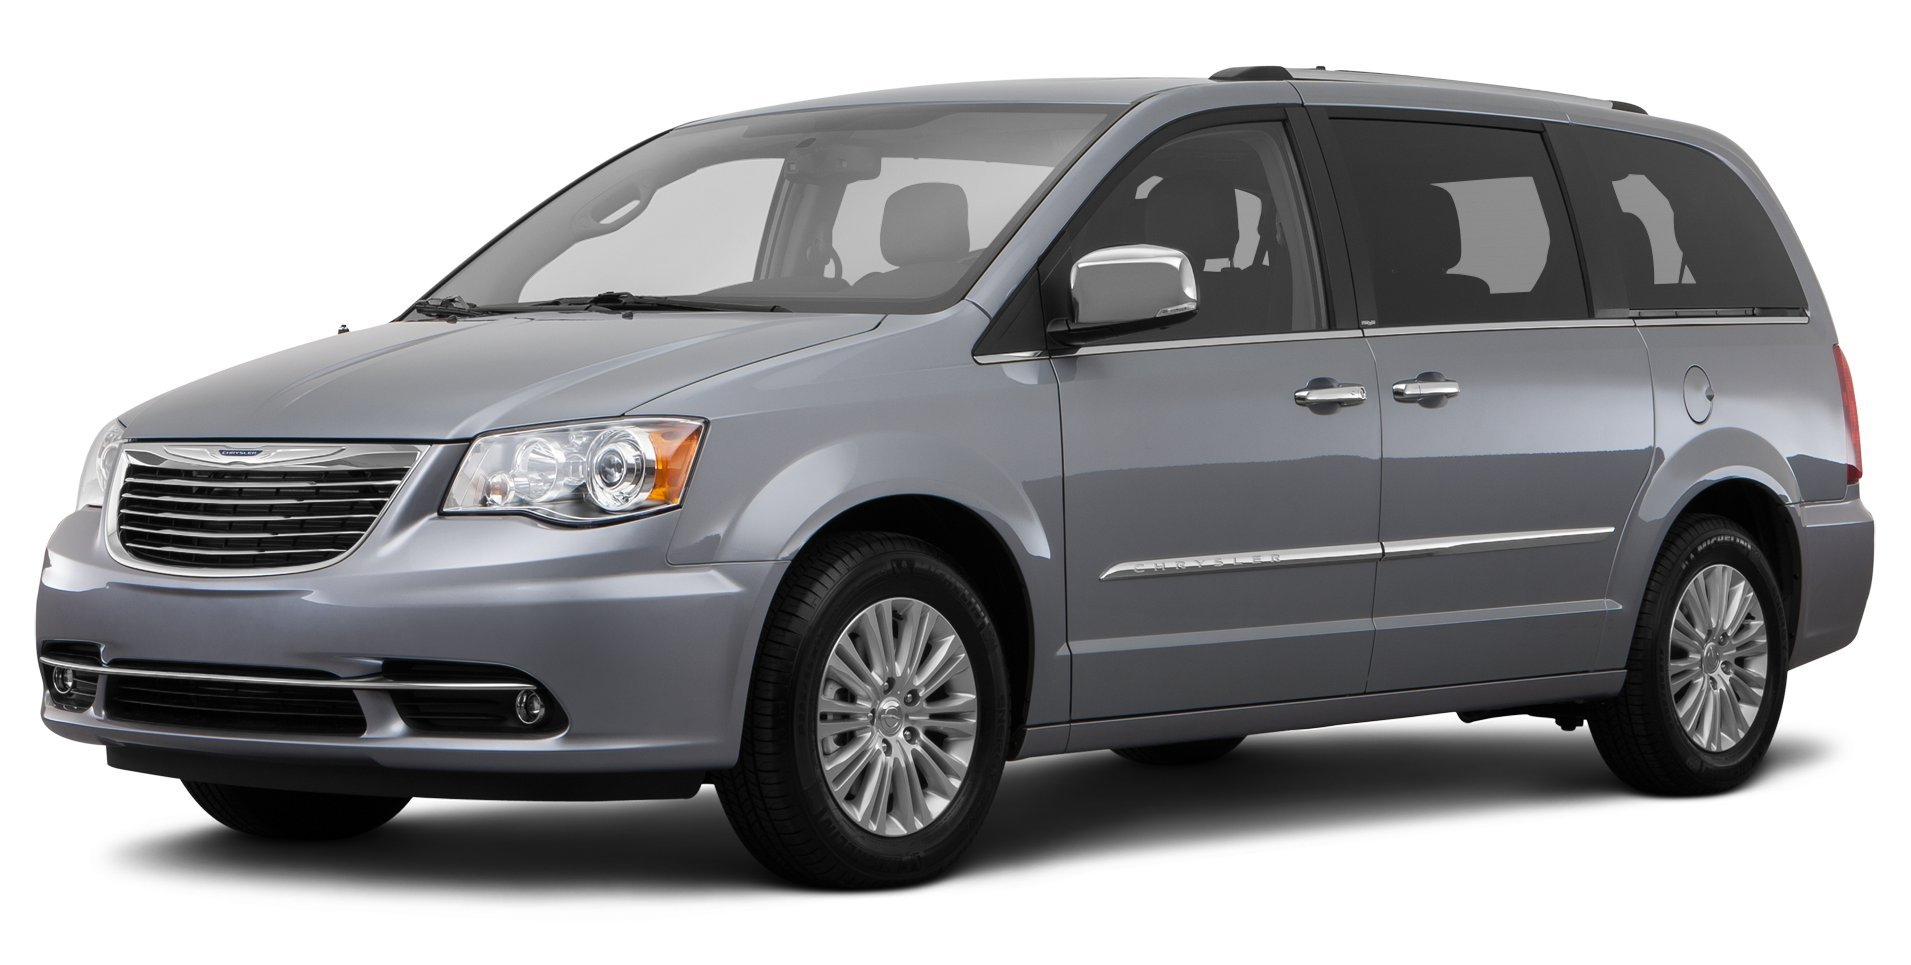 2014 Chrysler Town & Country Limited, 4-Door Wagon ...